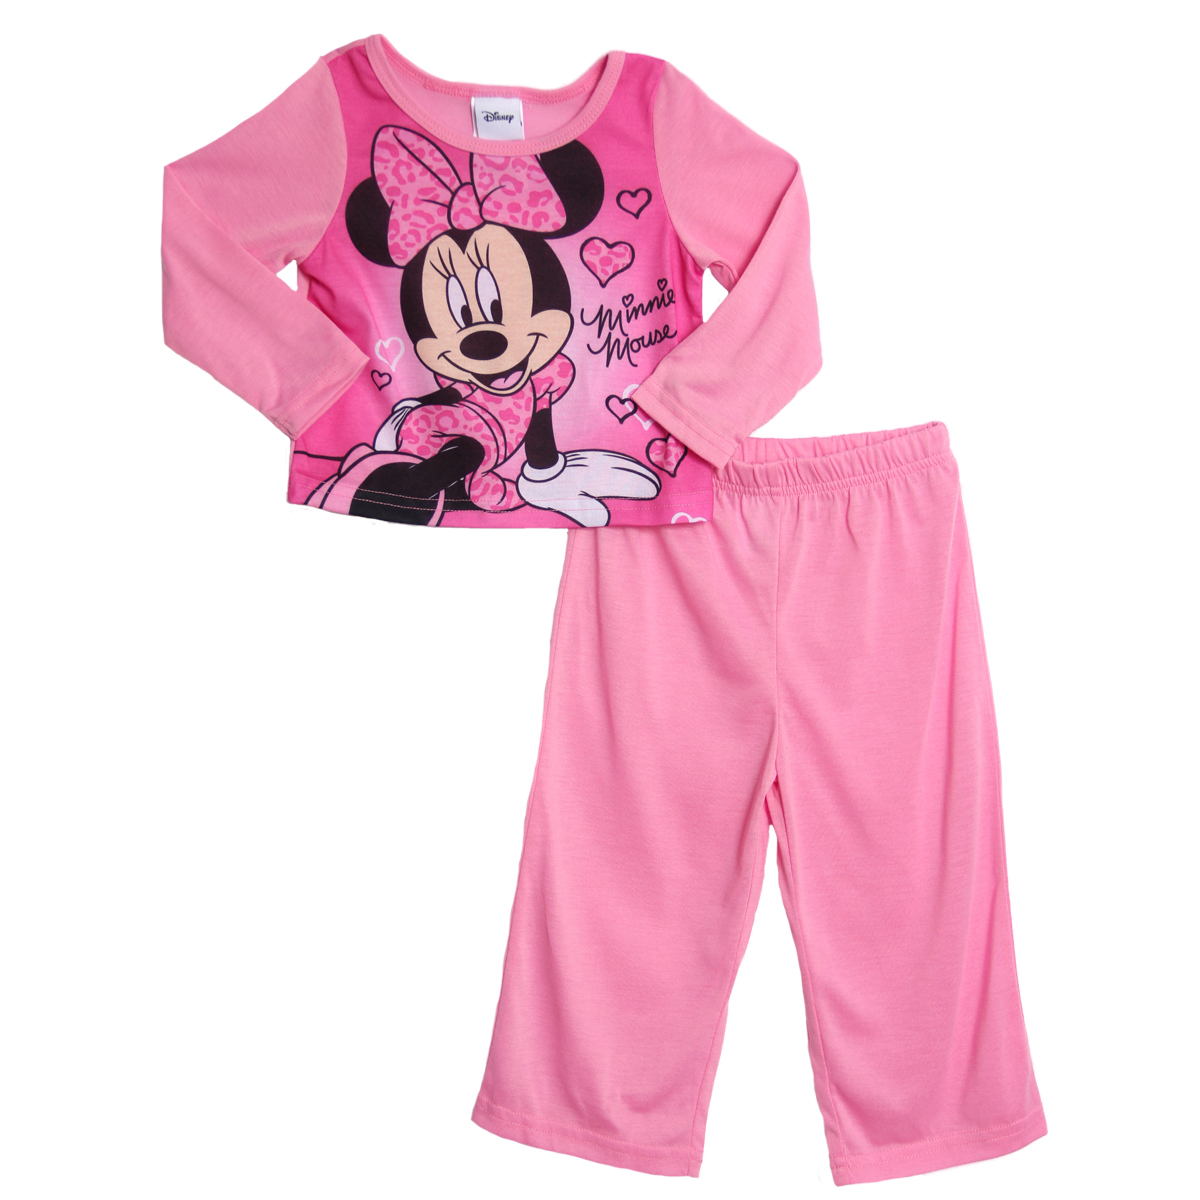 Disney Minnie Mouse Toddler Girls 2 Piece Pink Pajama Top Pants Set at Sears.com